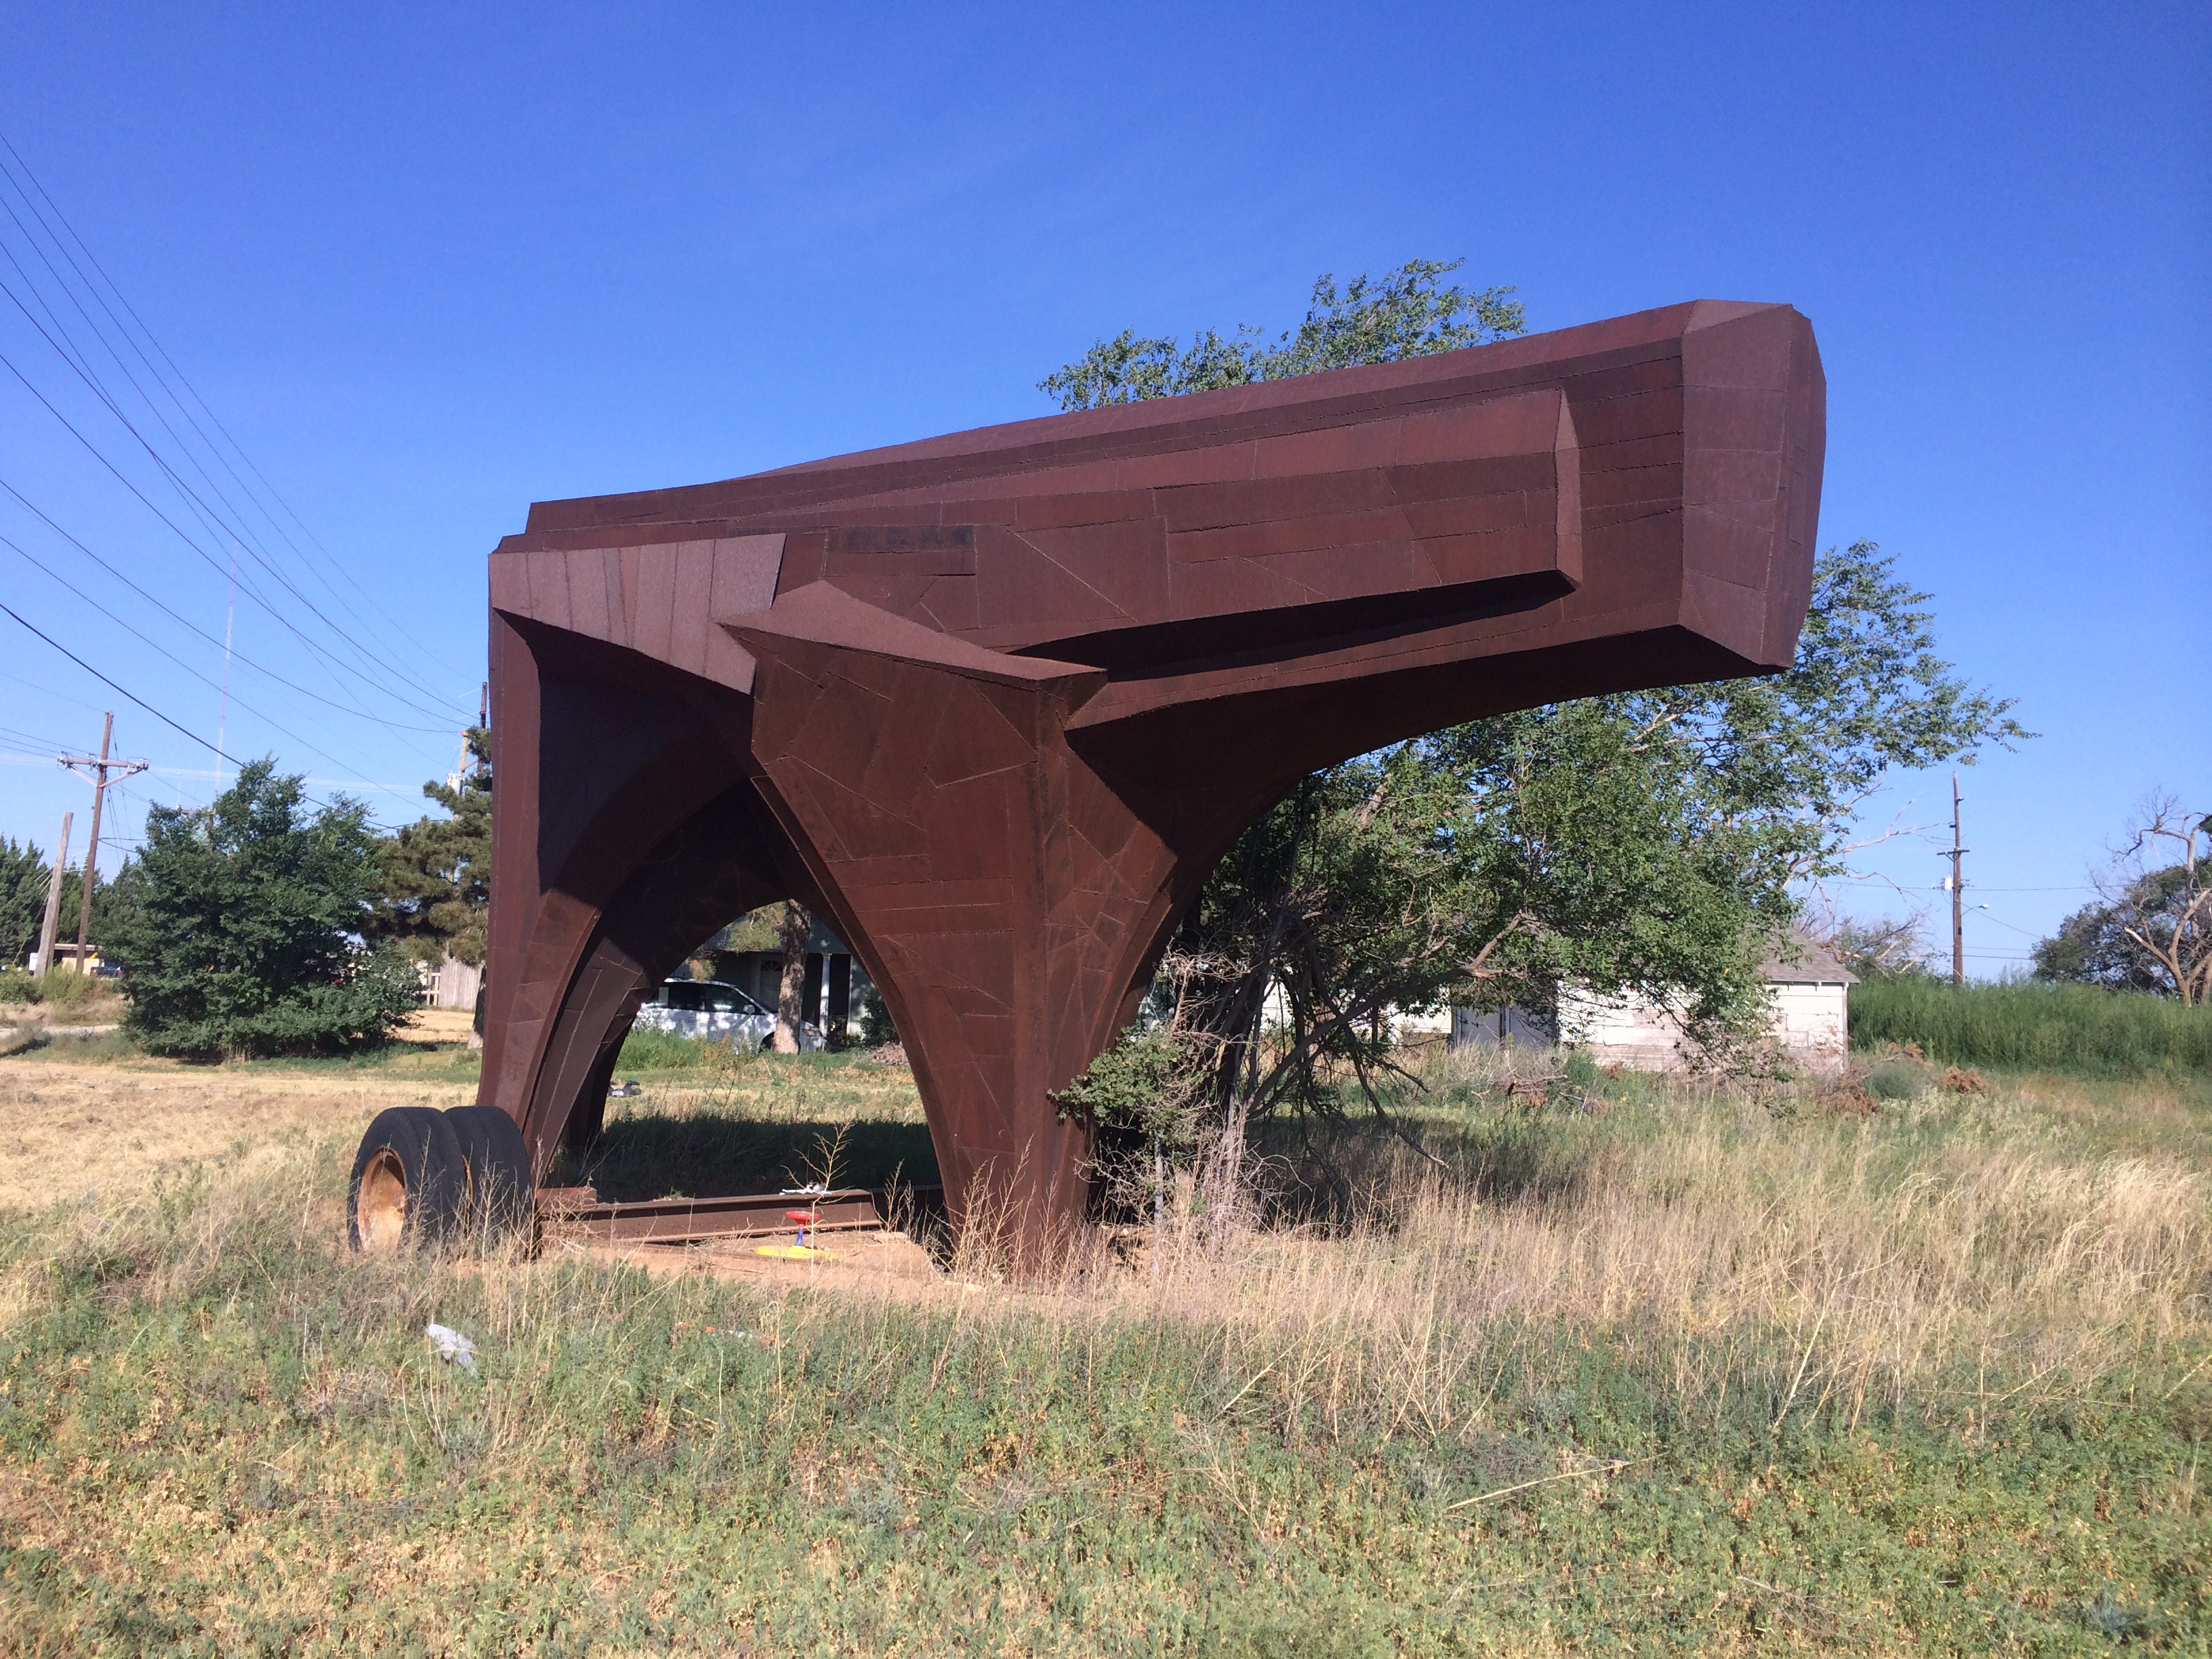 sculpture by robert bruno added to the texas tech university sculpture by robert bruno added to the texas tech university public art collection